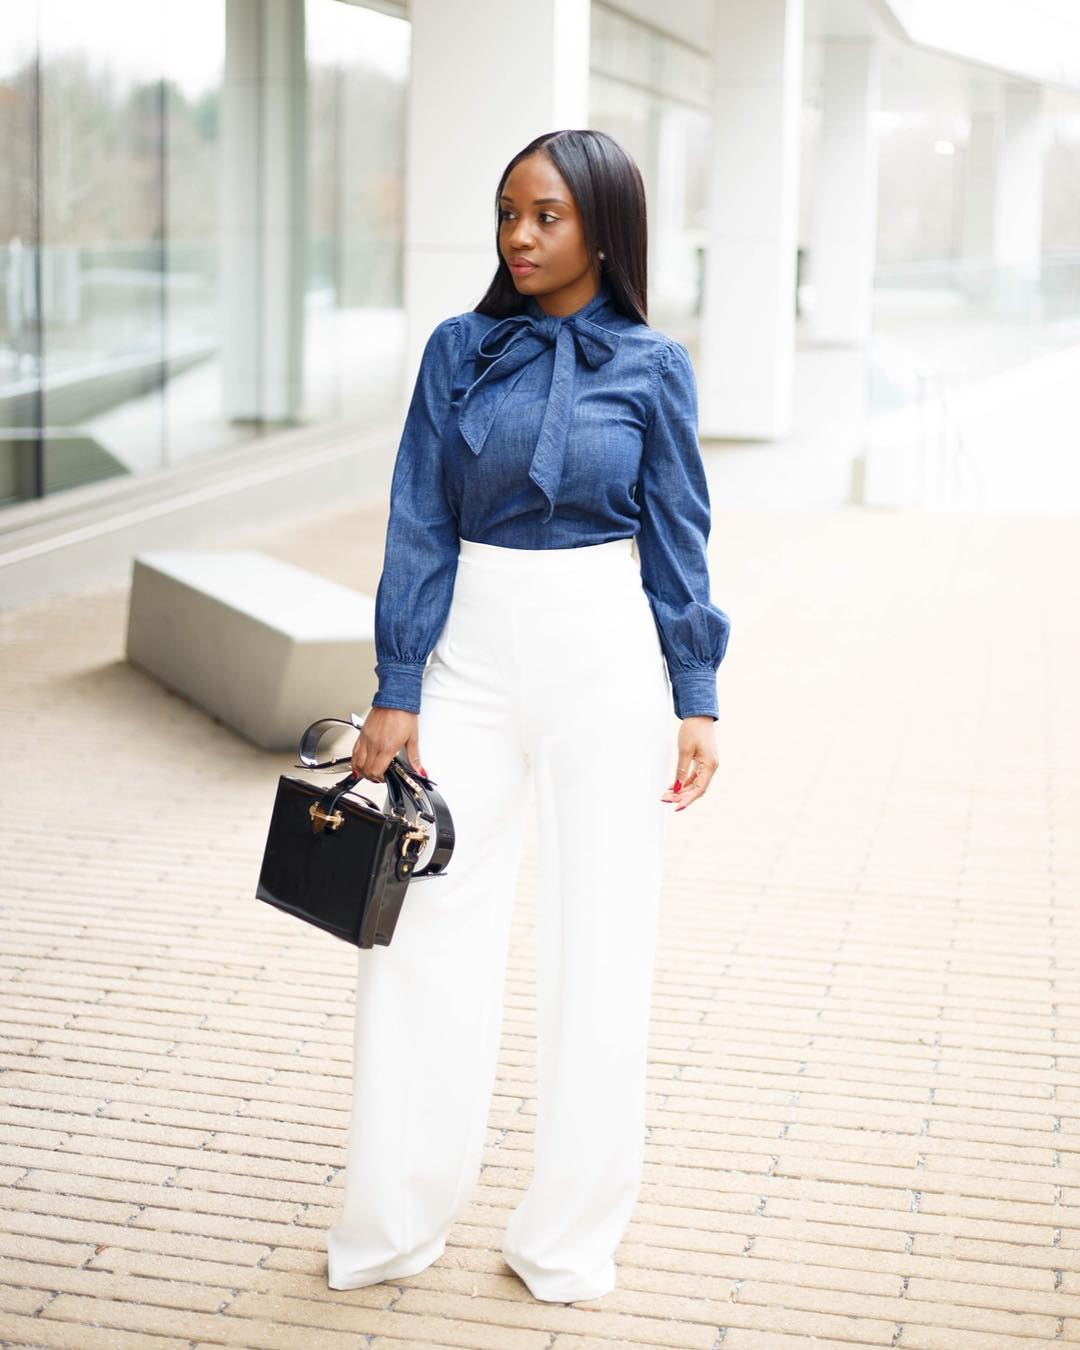 Priscilla With Bold Look On Pant Trouser With A Modern Bow Shirt